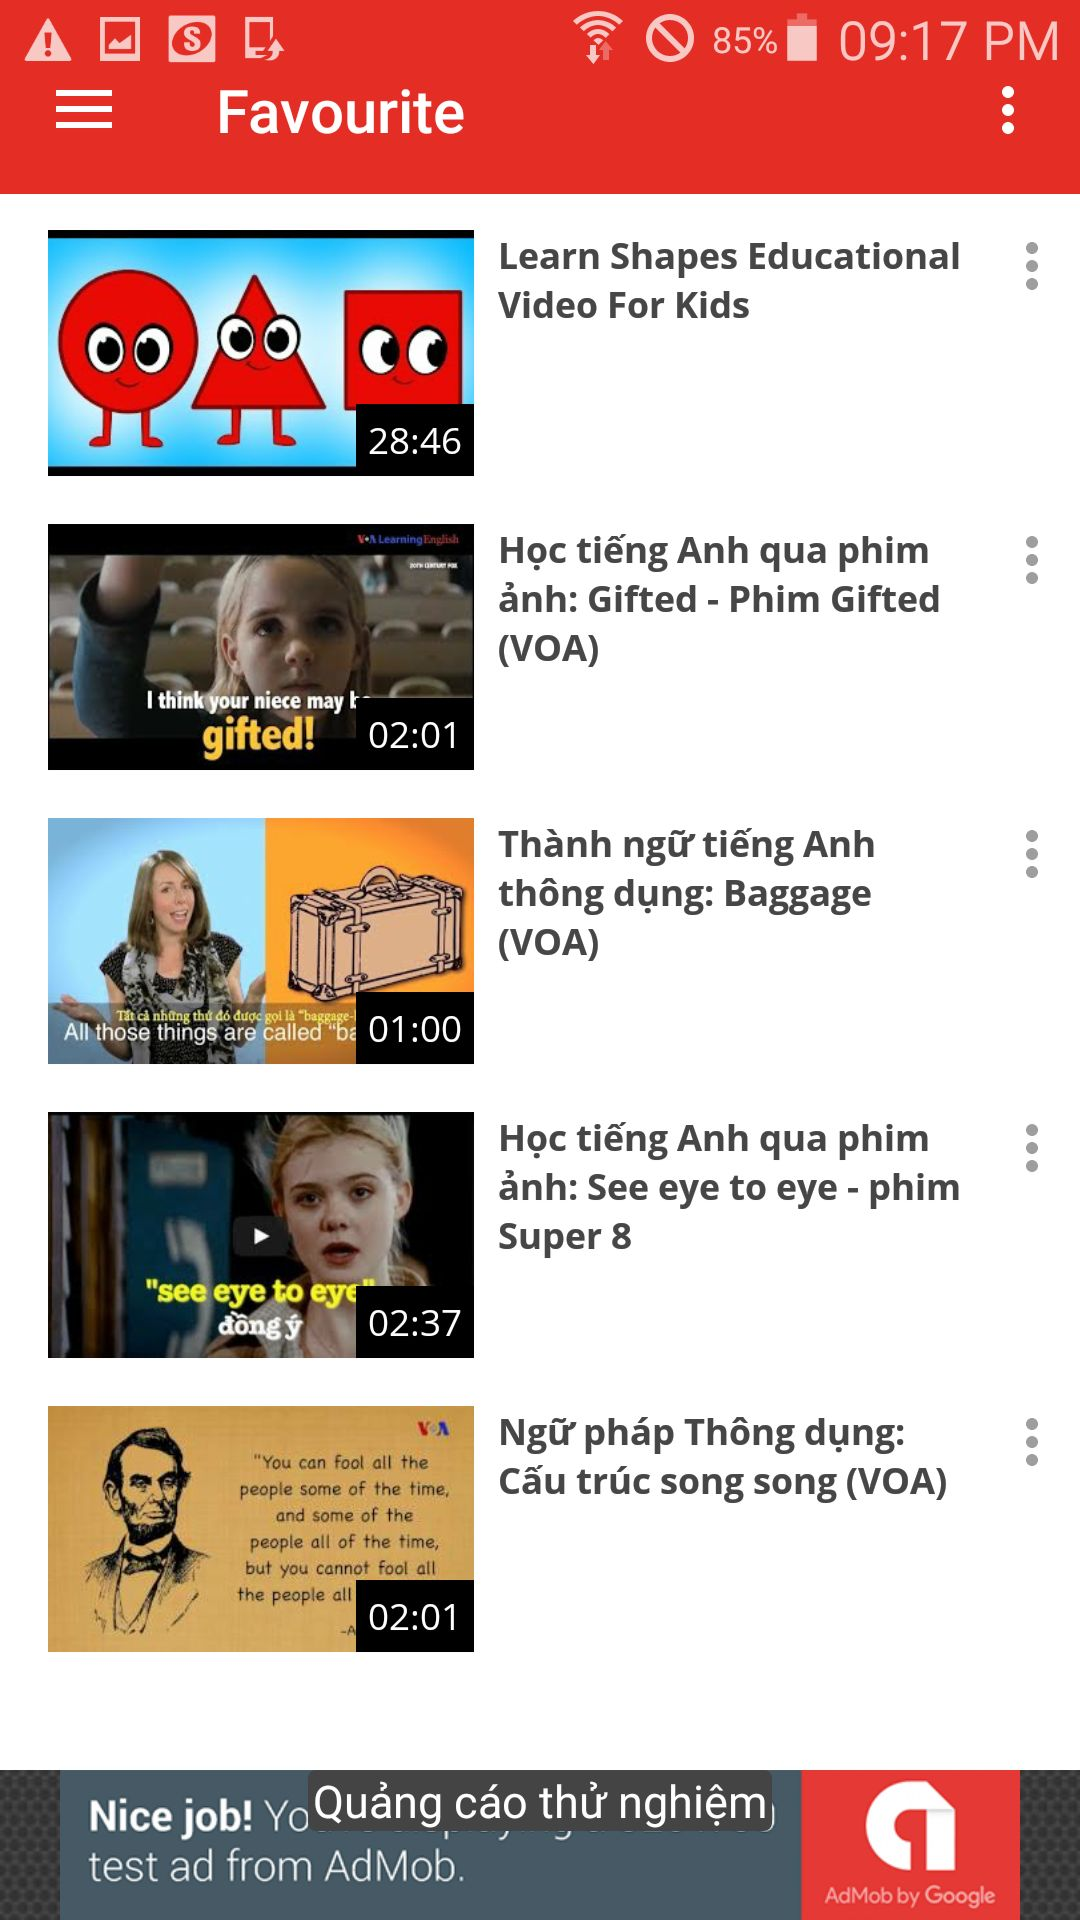 My Youtube Chanel - Android App Template Screenshot 1